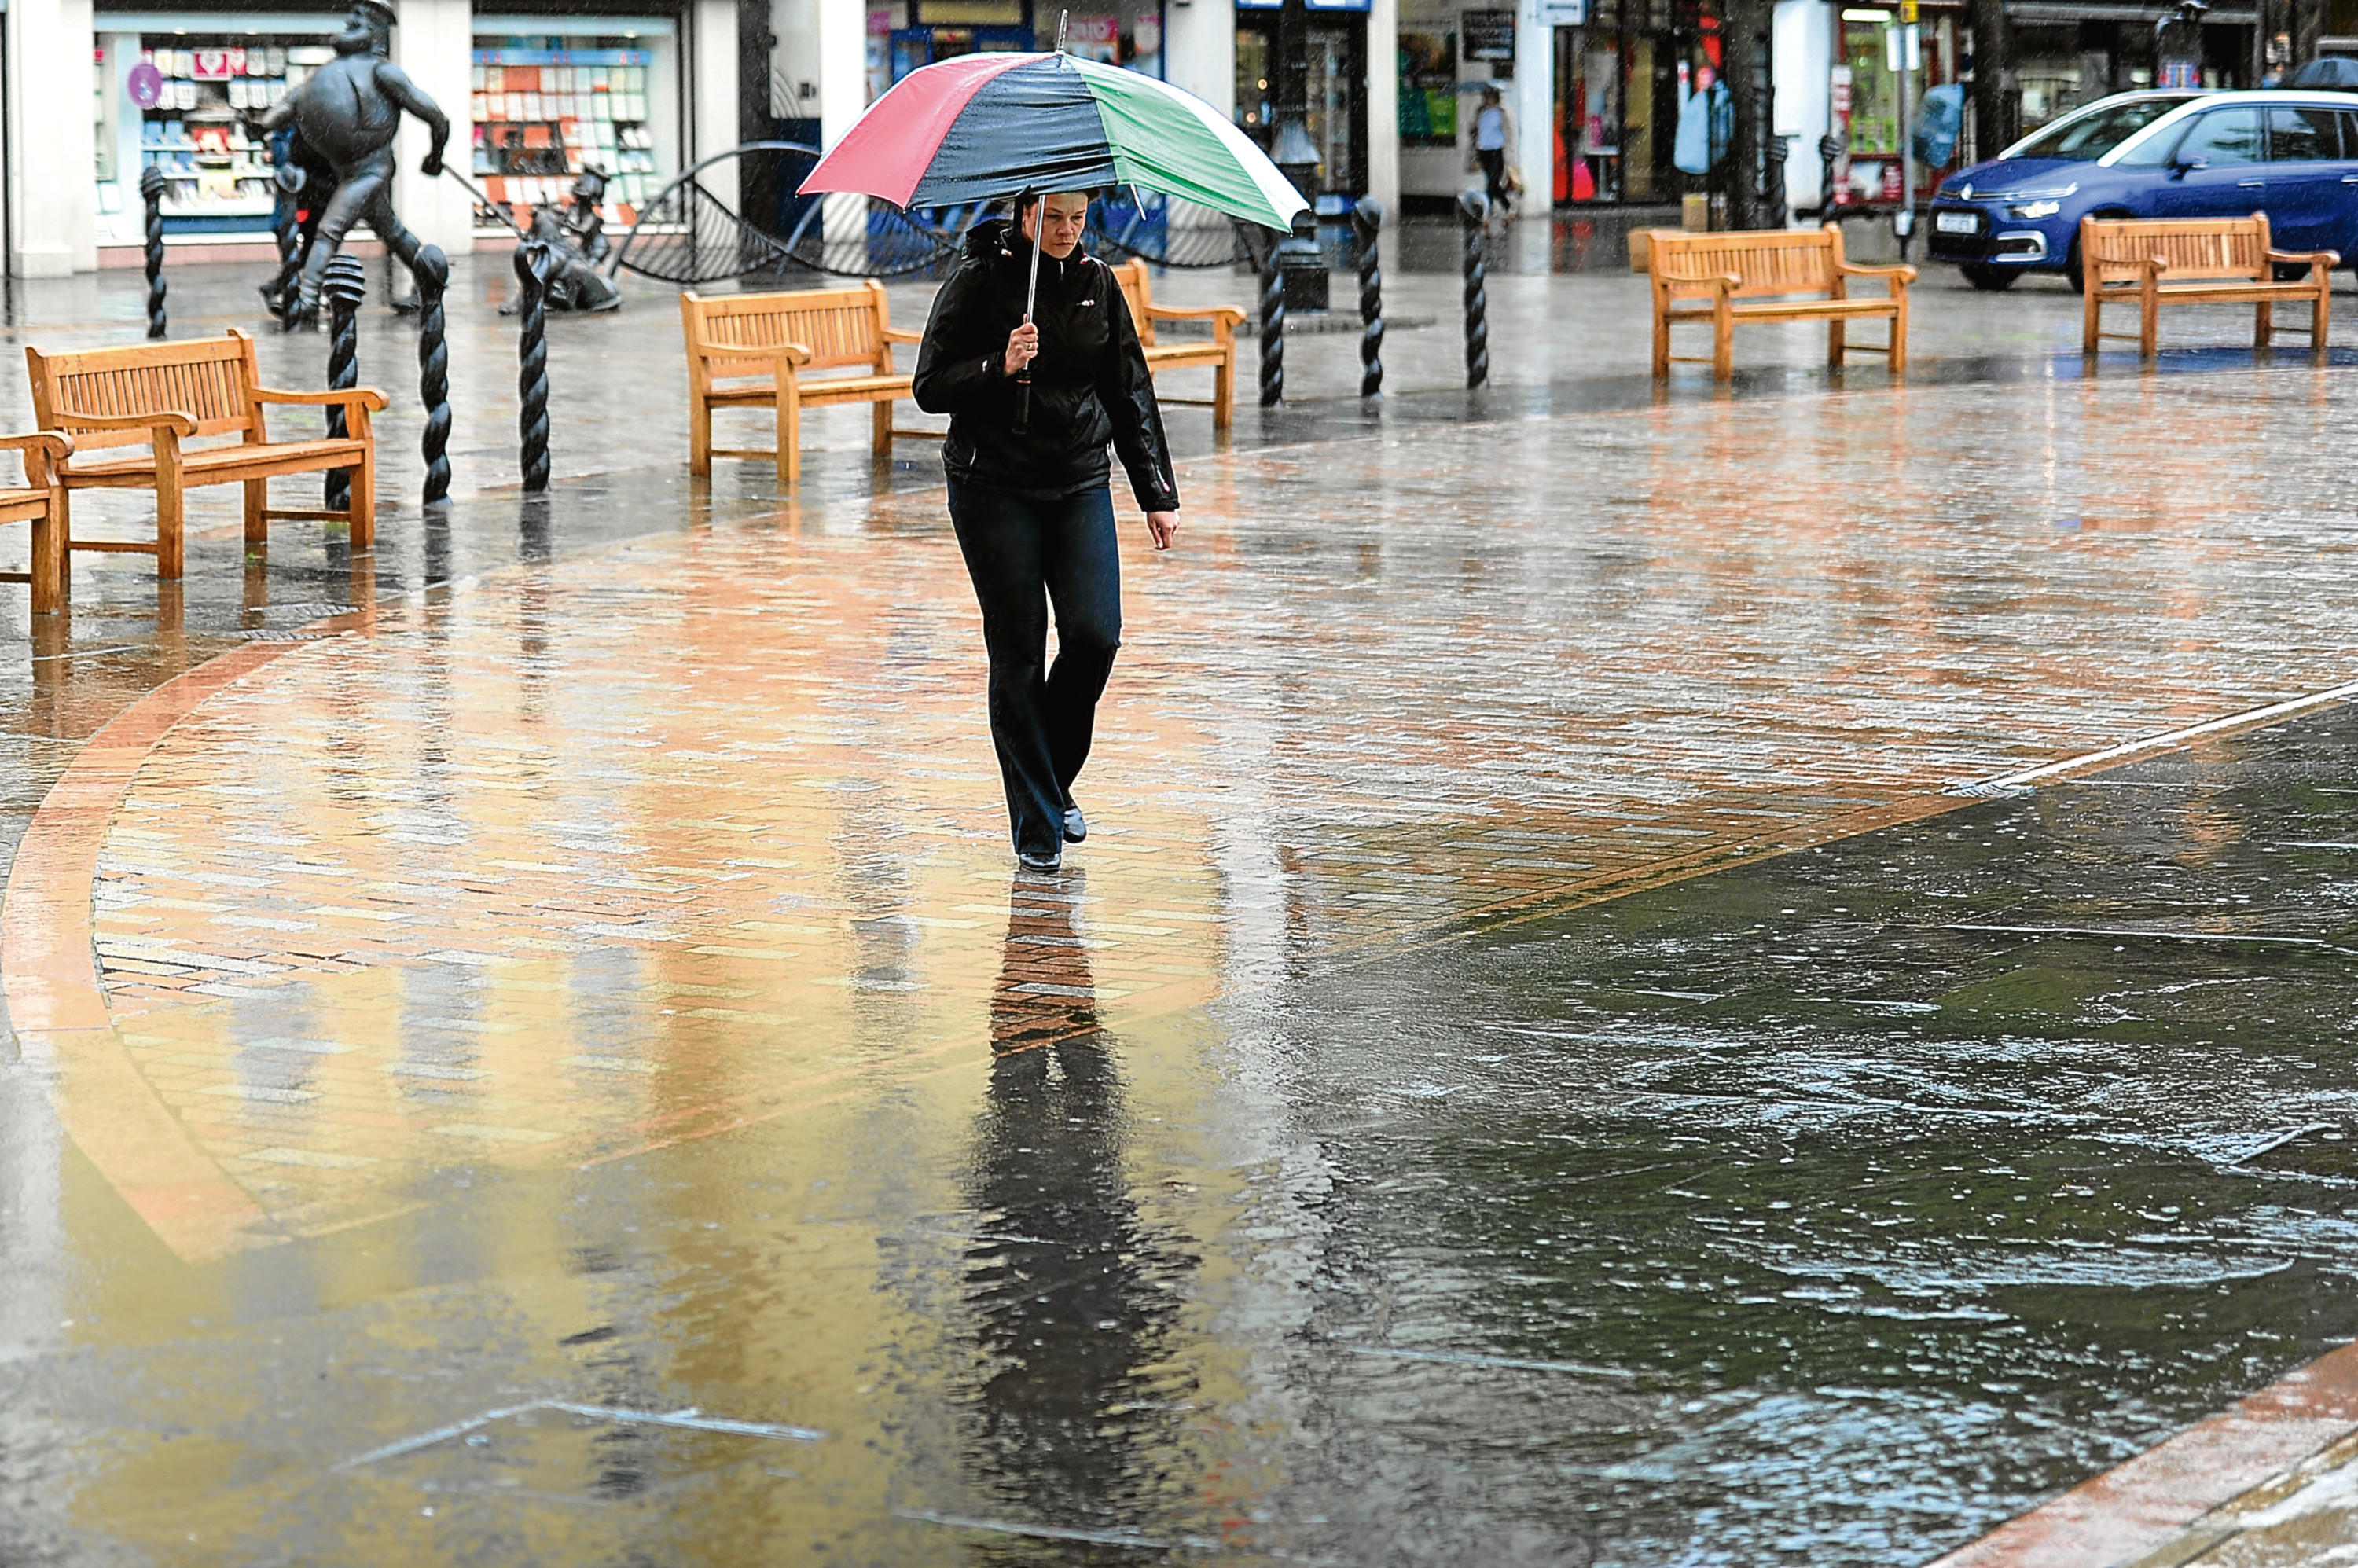 A member of the public braves a heavy downpour in Dundee High Street.